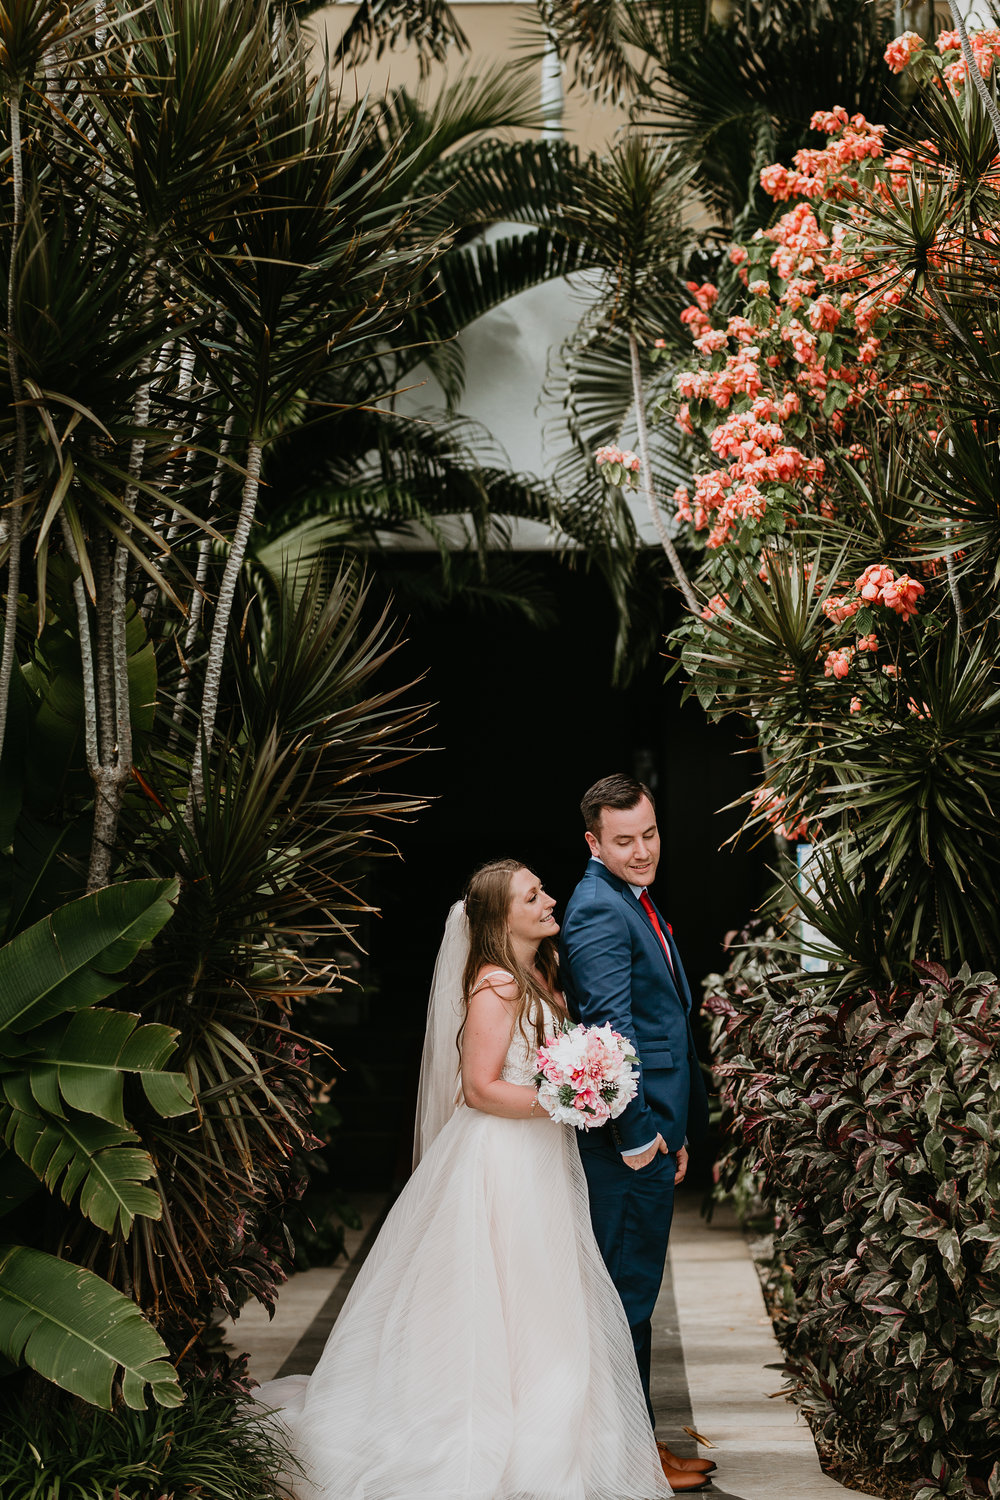 nicole-daacke-photography-destination-wedding-in-st-lucia-sandals-la-toc-intimate-island-wedding-carribean-elopement-photographer-chill-island-wedding-42.jpg